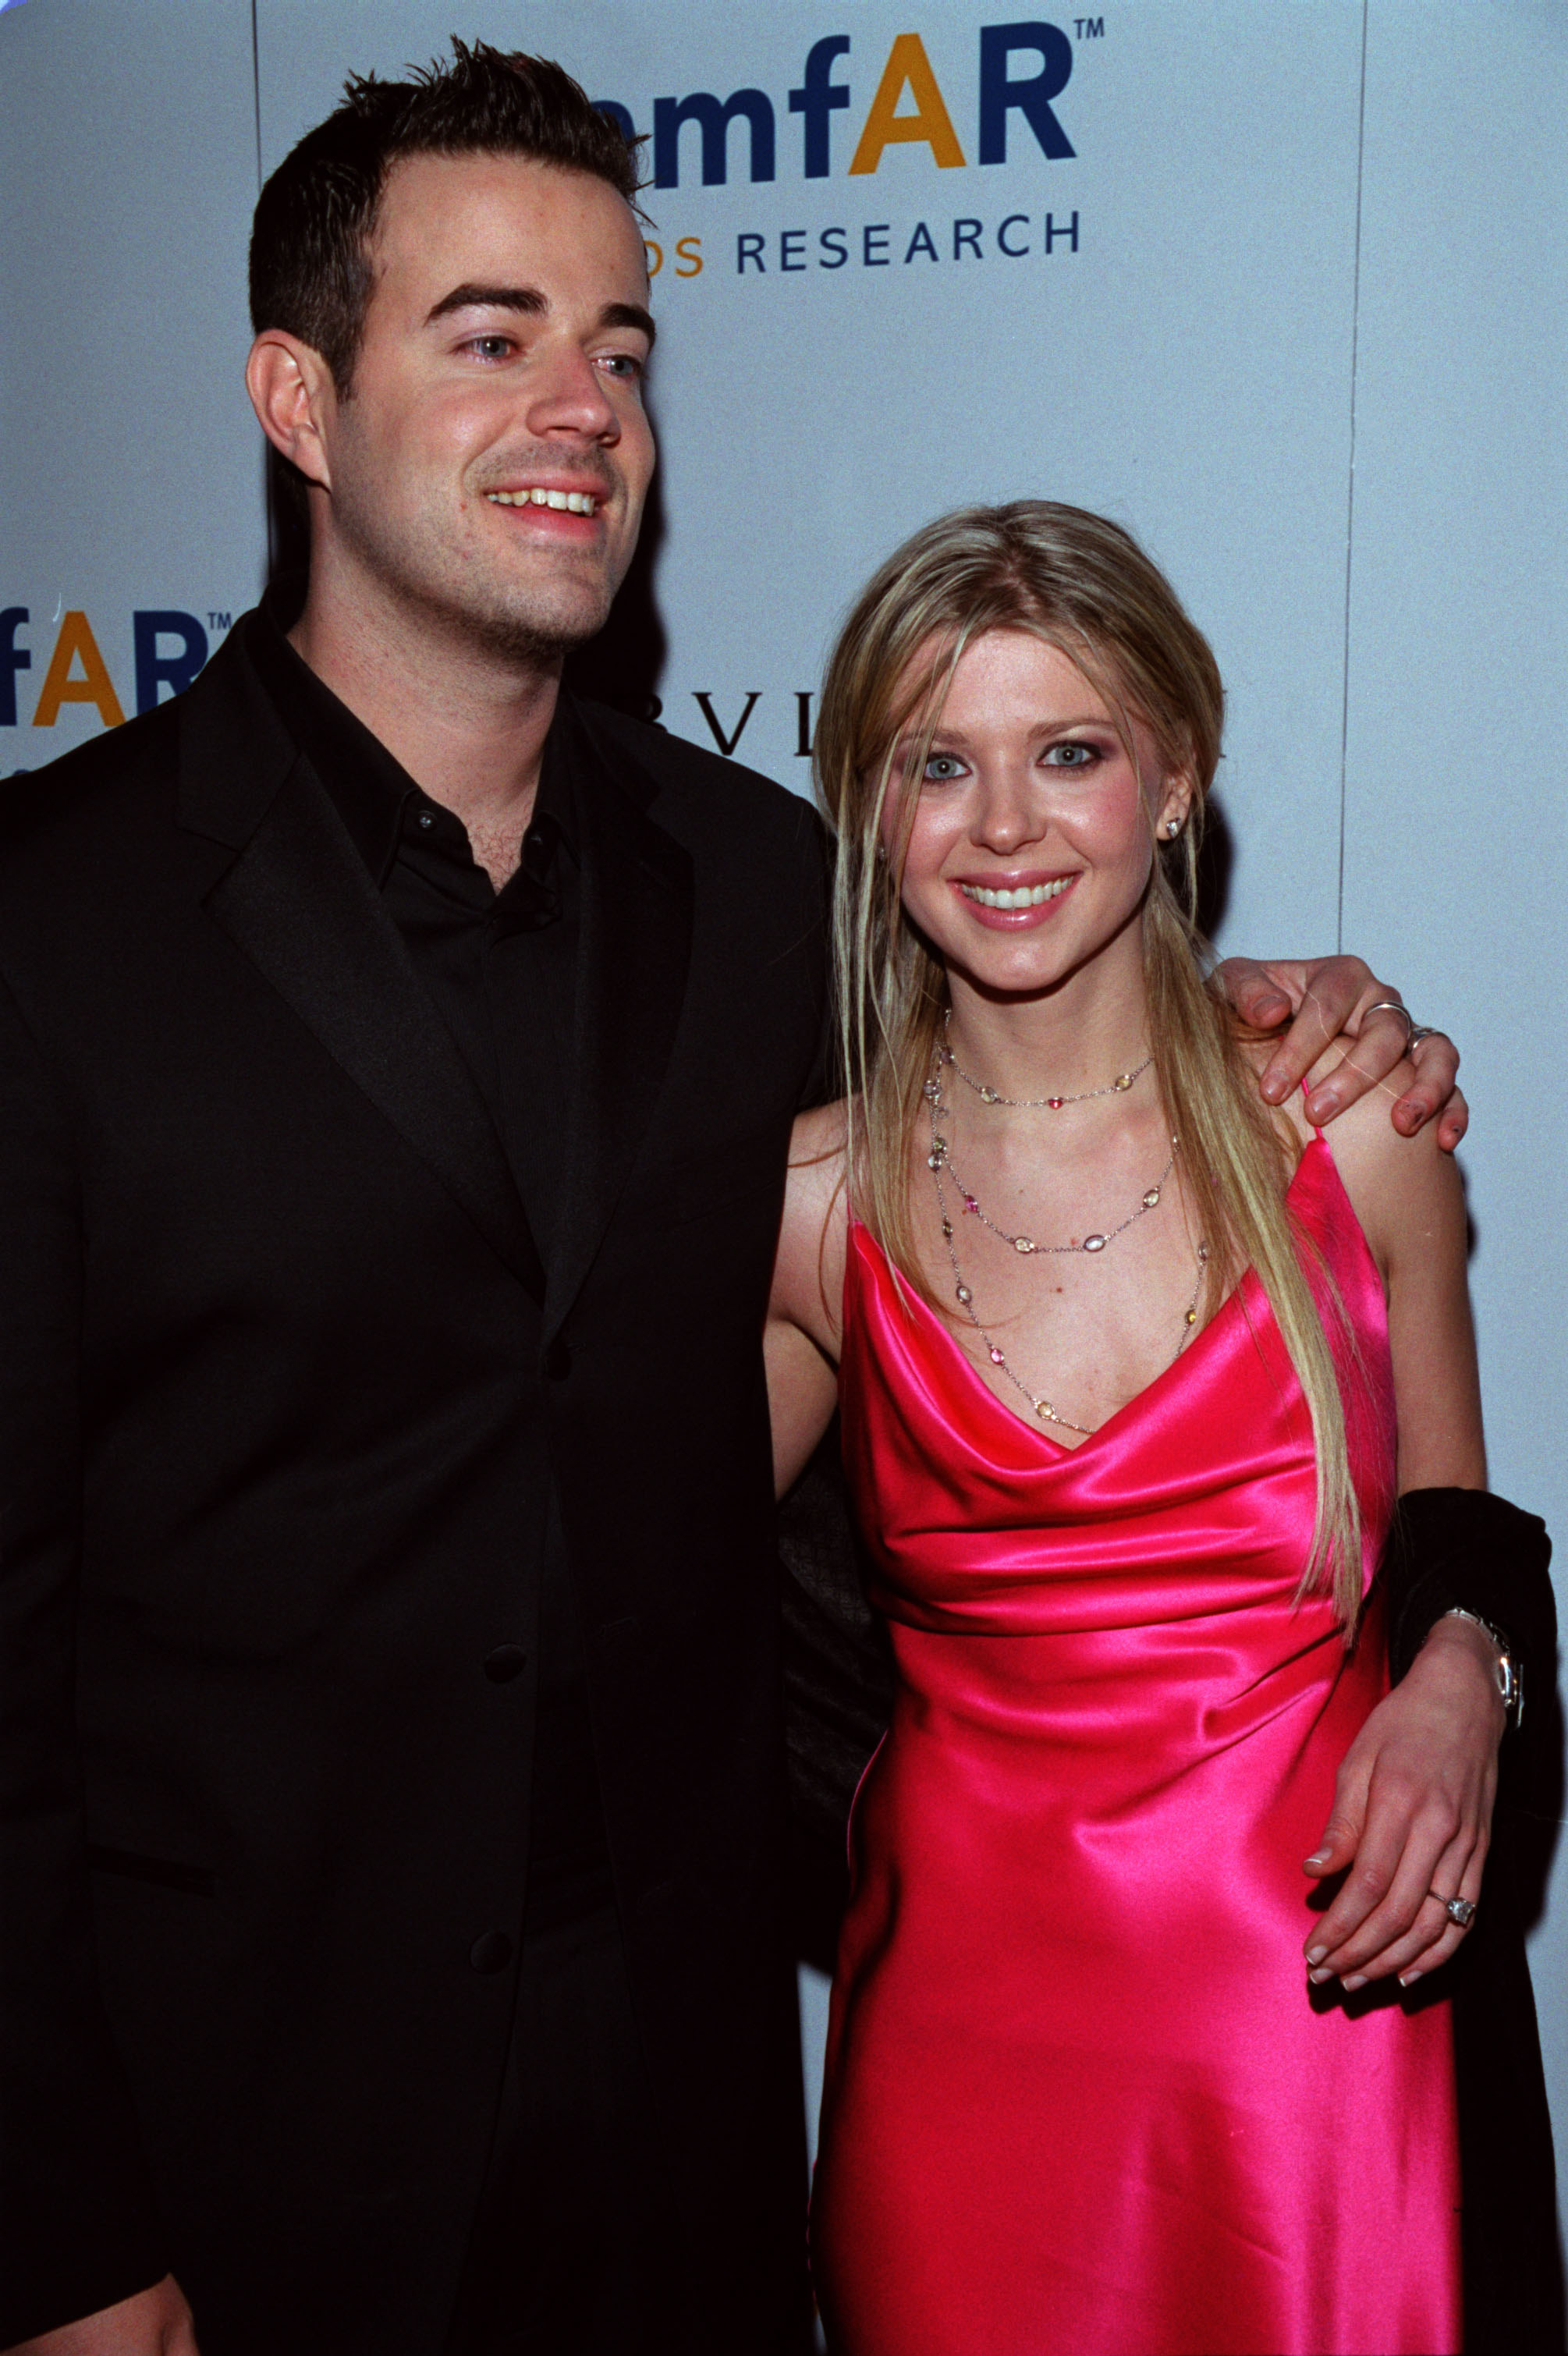 Carson Daly and Tara Reid at an event together